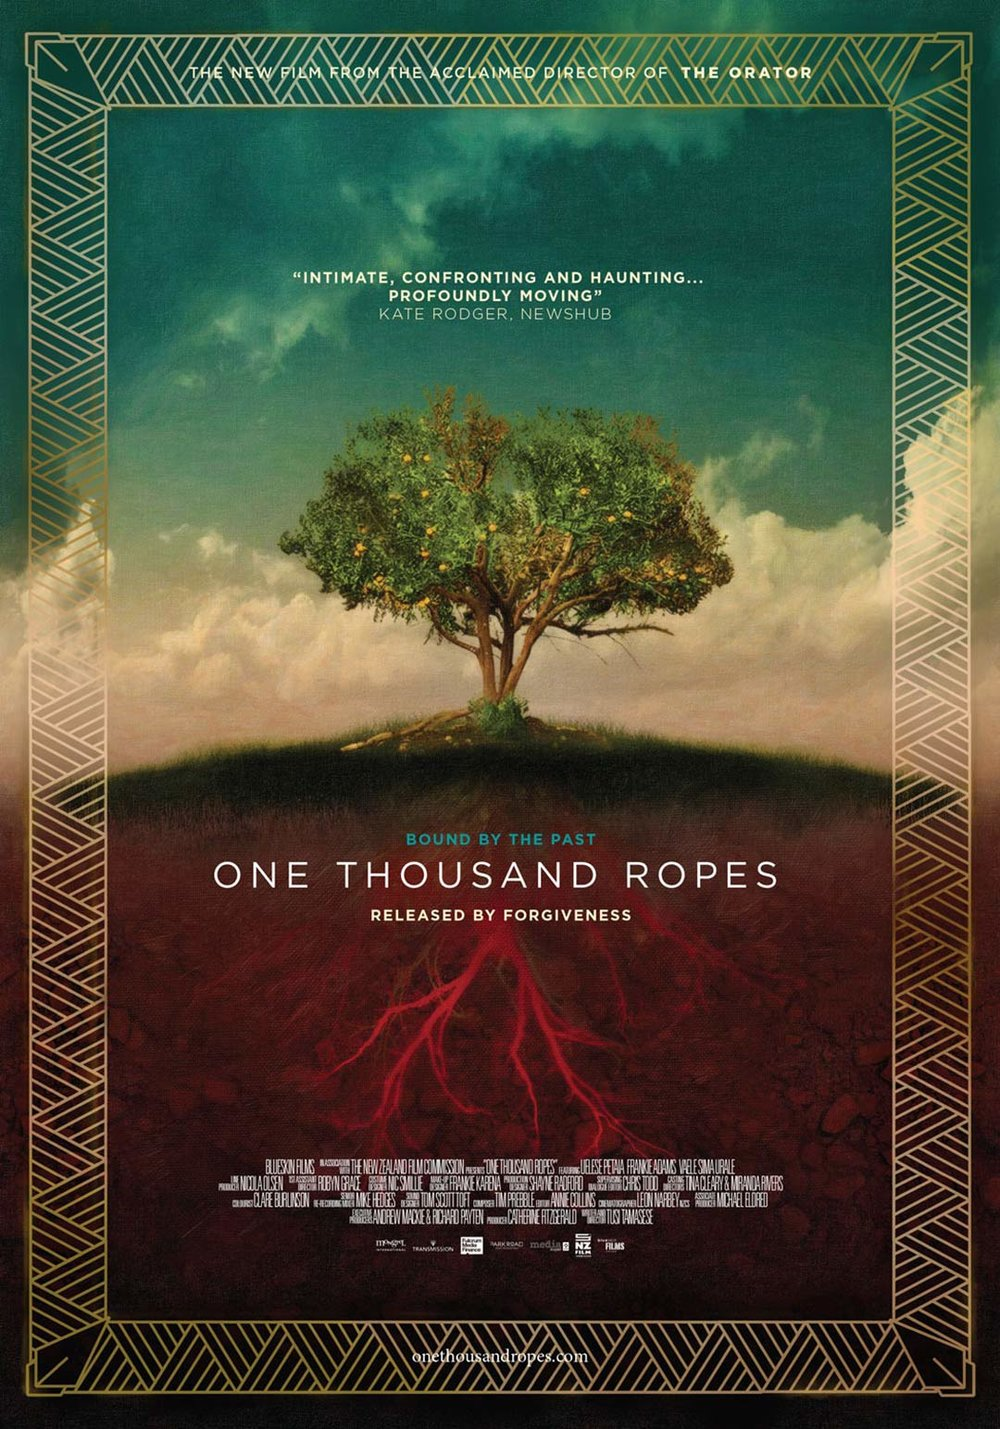 one-thousand-ropes poster.jpg